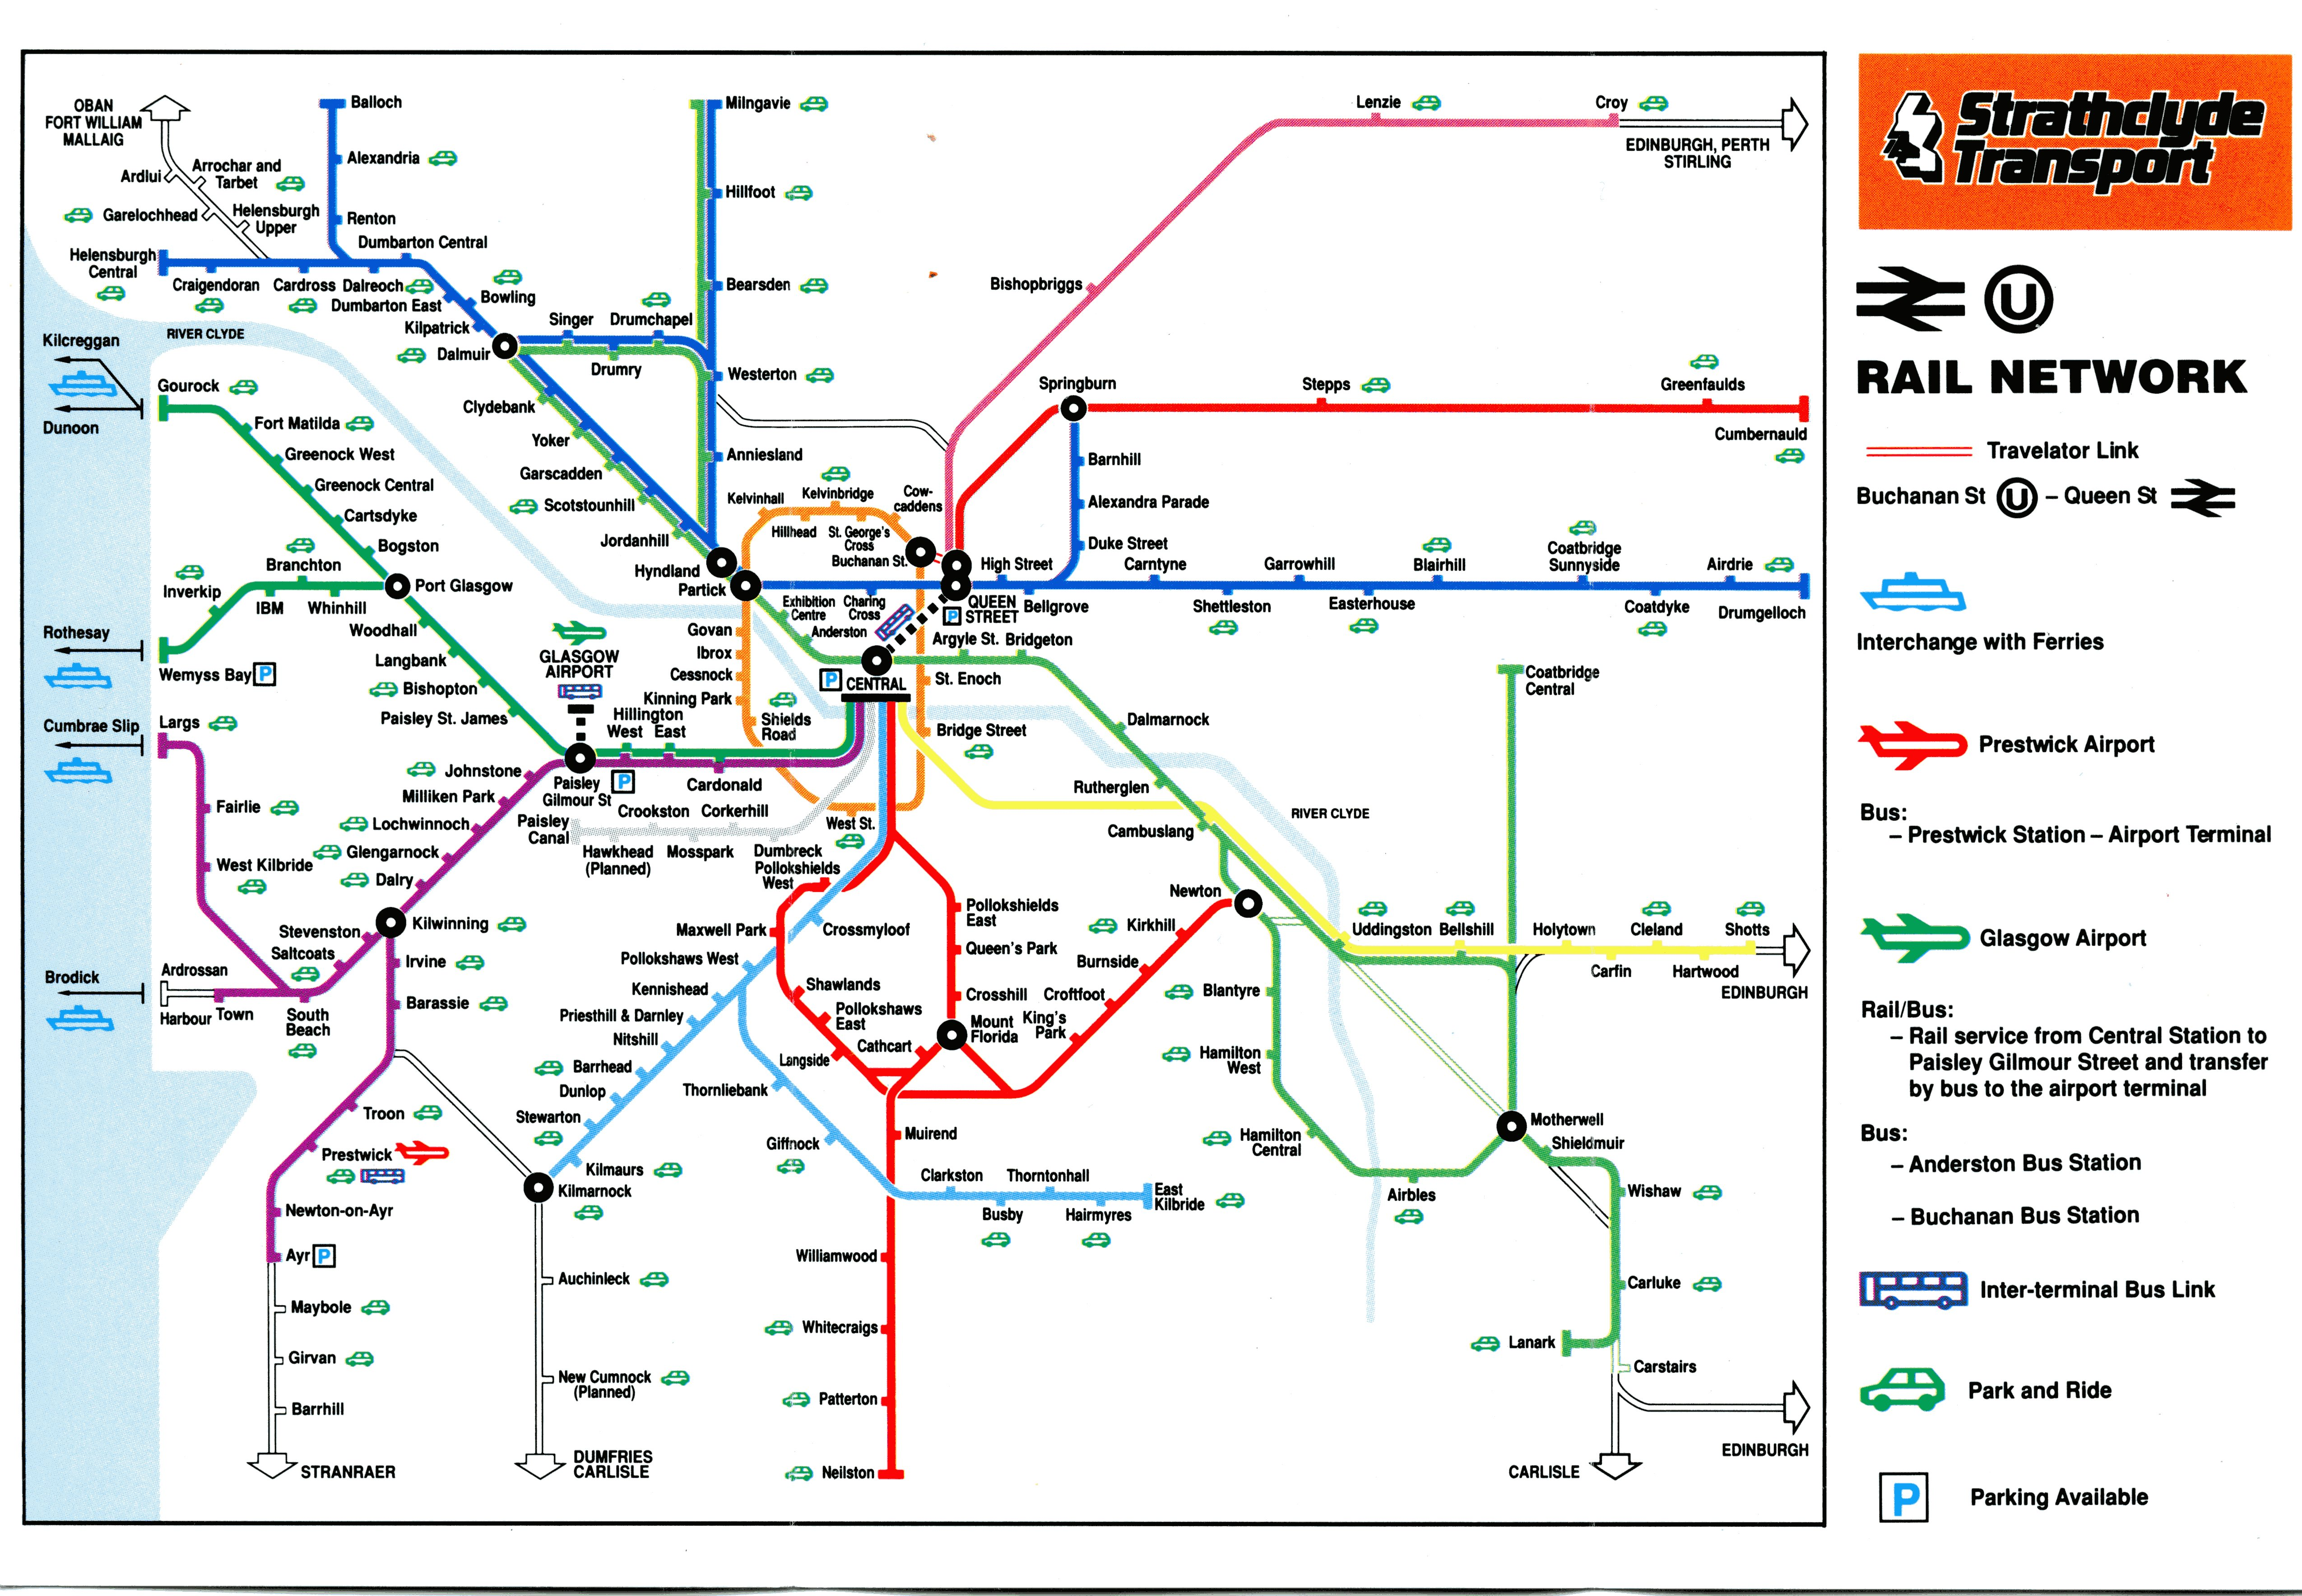 Train Routes In Scotland Map.Perth Train Station Map Compressportnederland